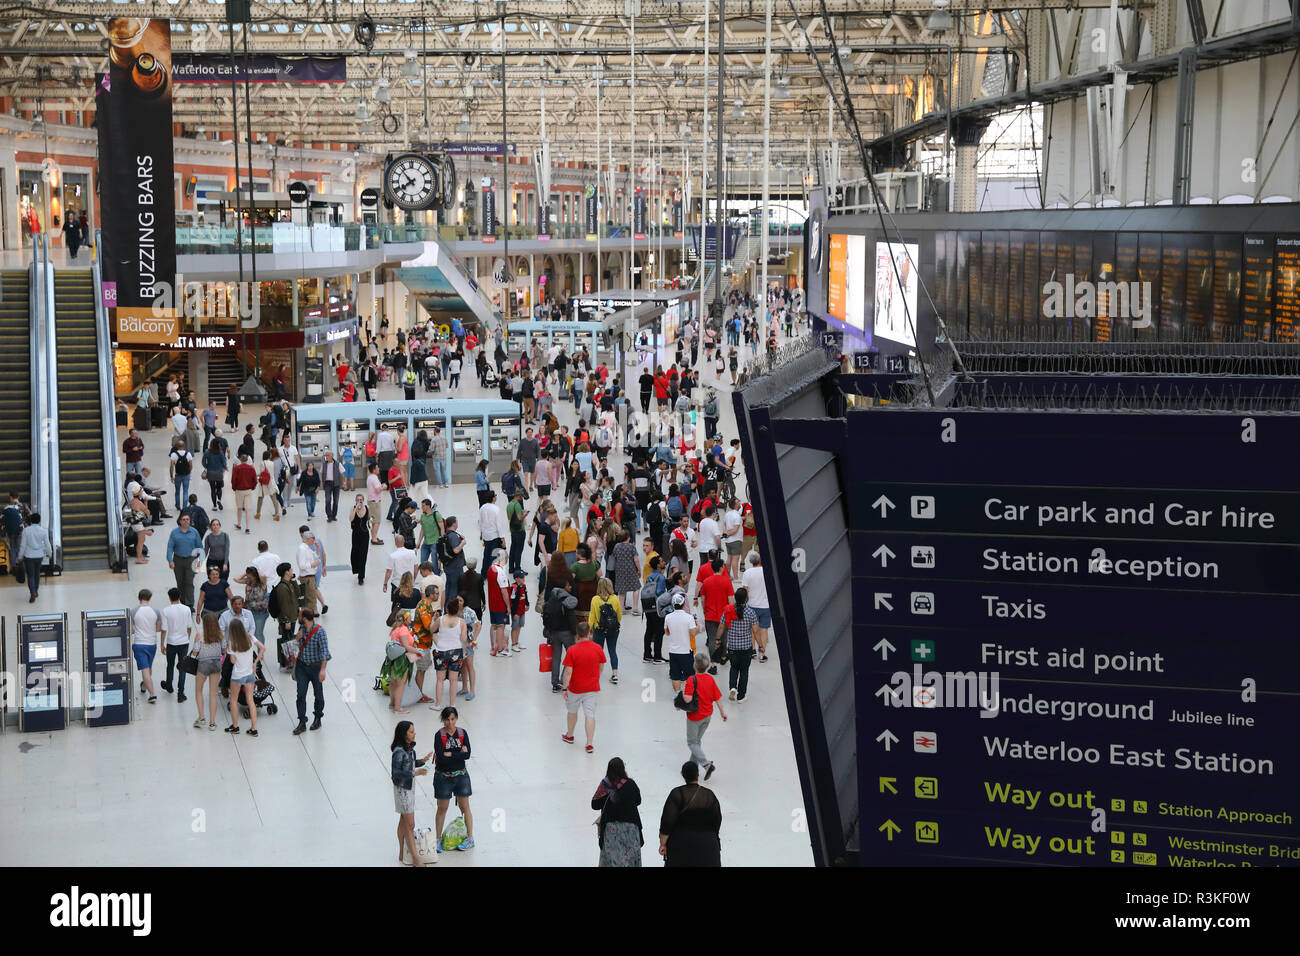 Busy Waterloo station, a key hub for trains to the south and south-west, in London, UK - Stock Image